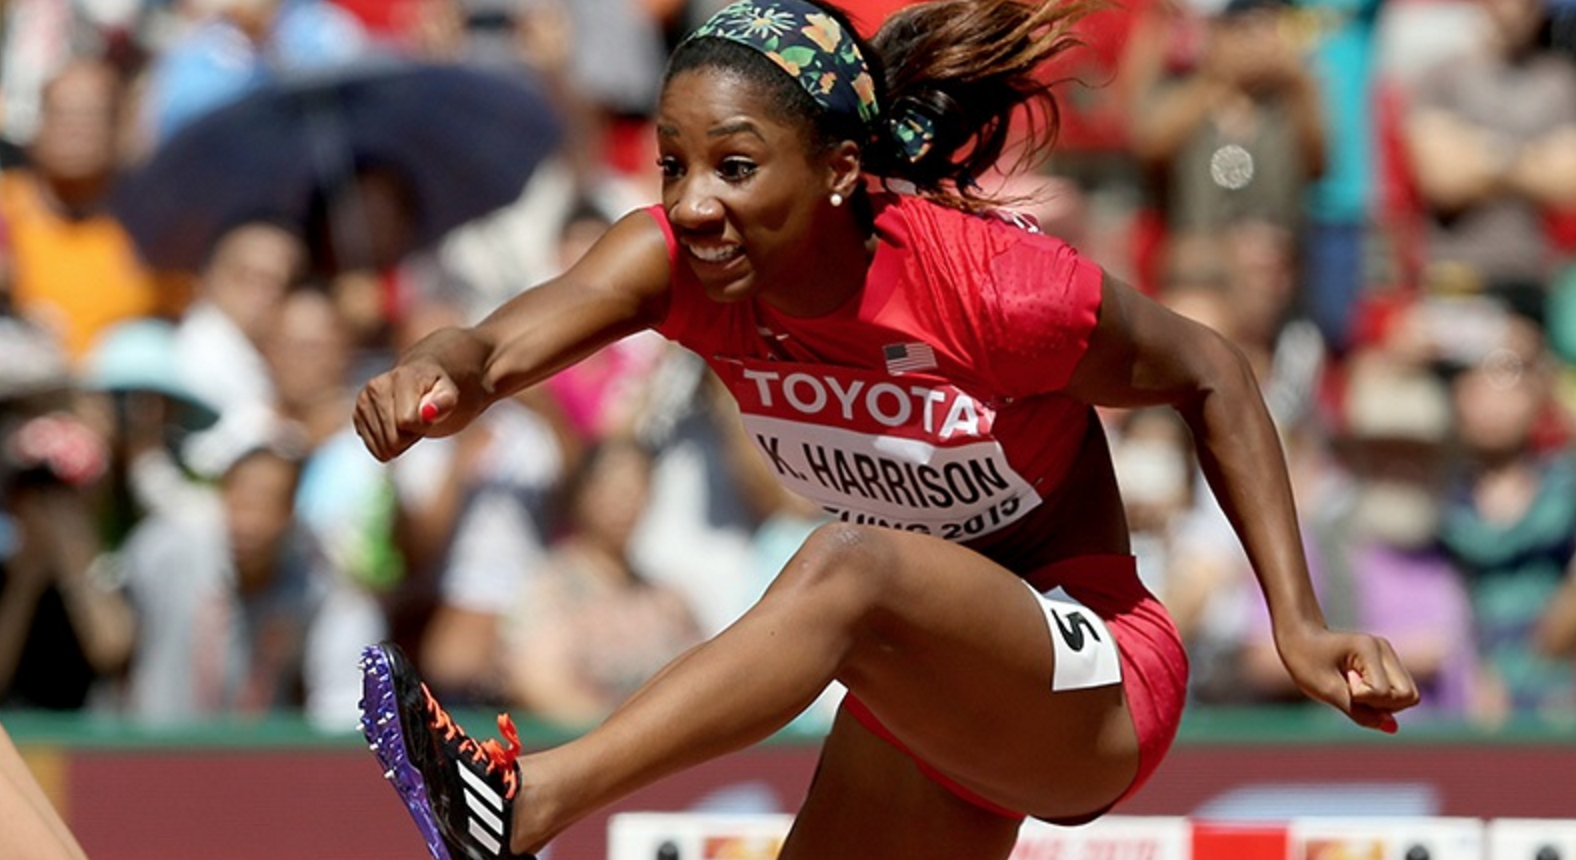 Keni Harrison competing at the 2015 World Championships in Beijing.  (Getty Images)